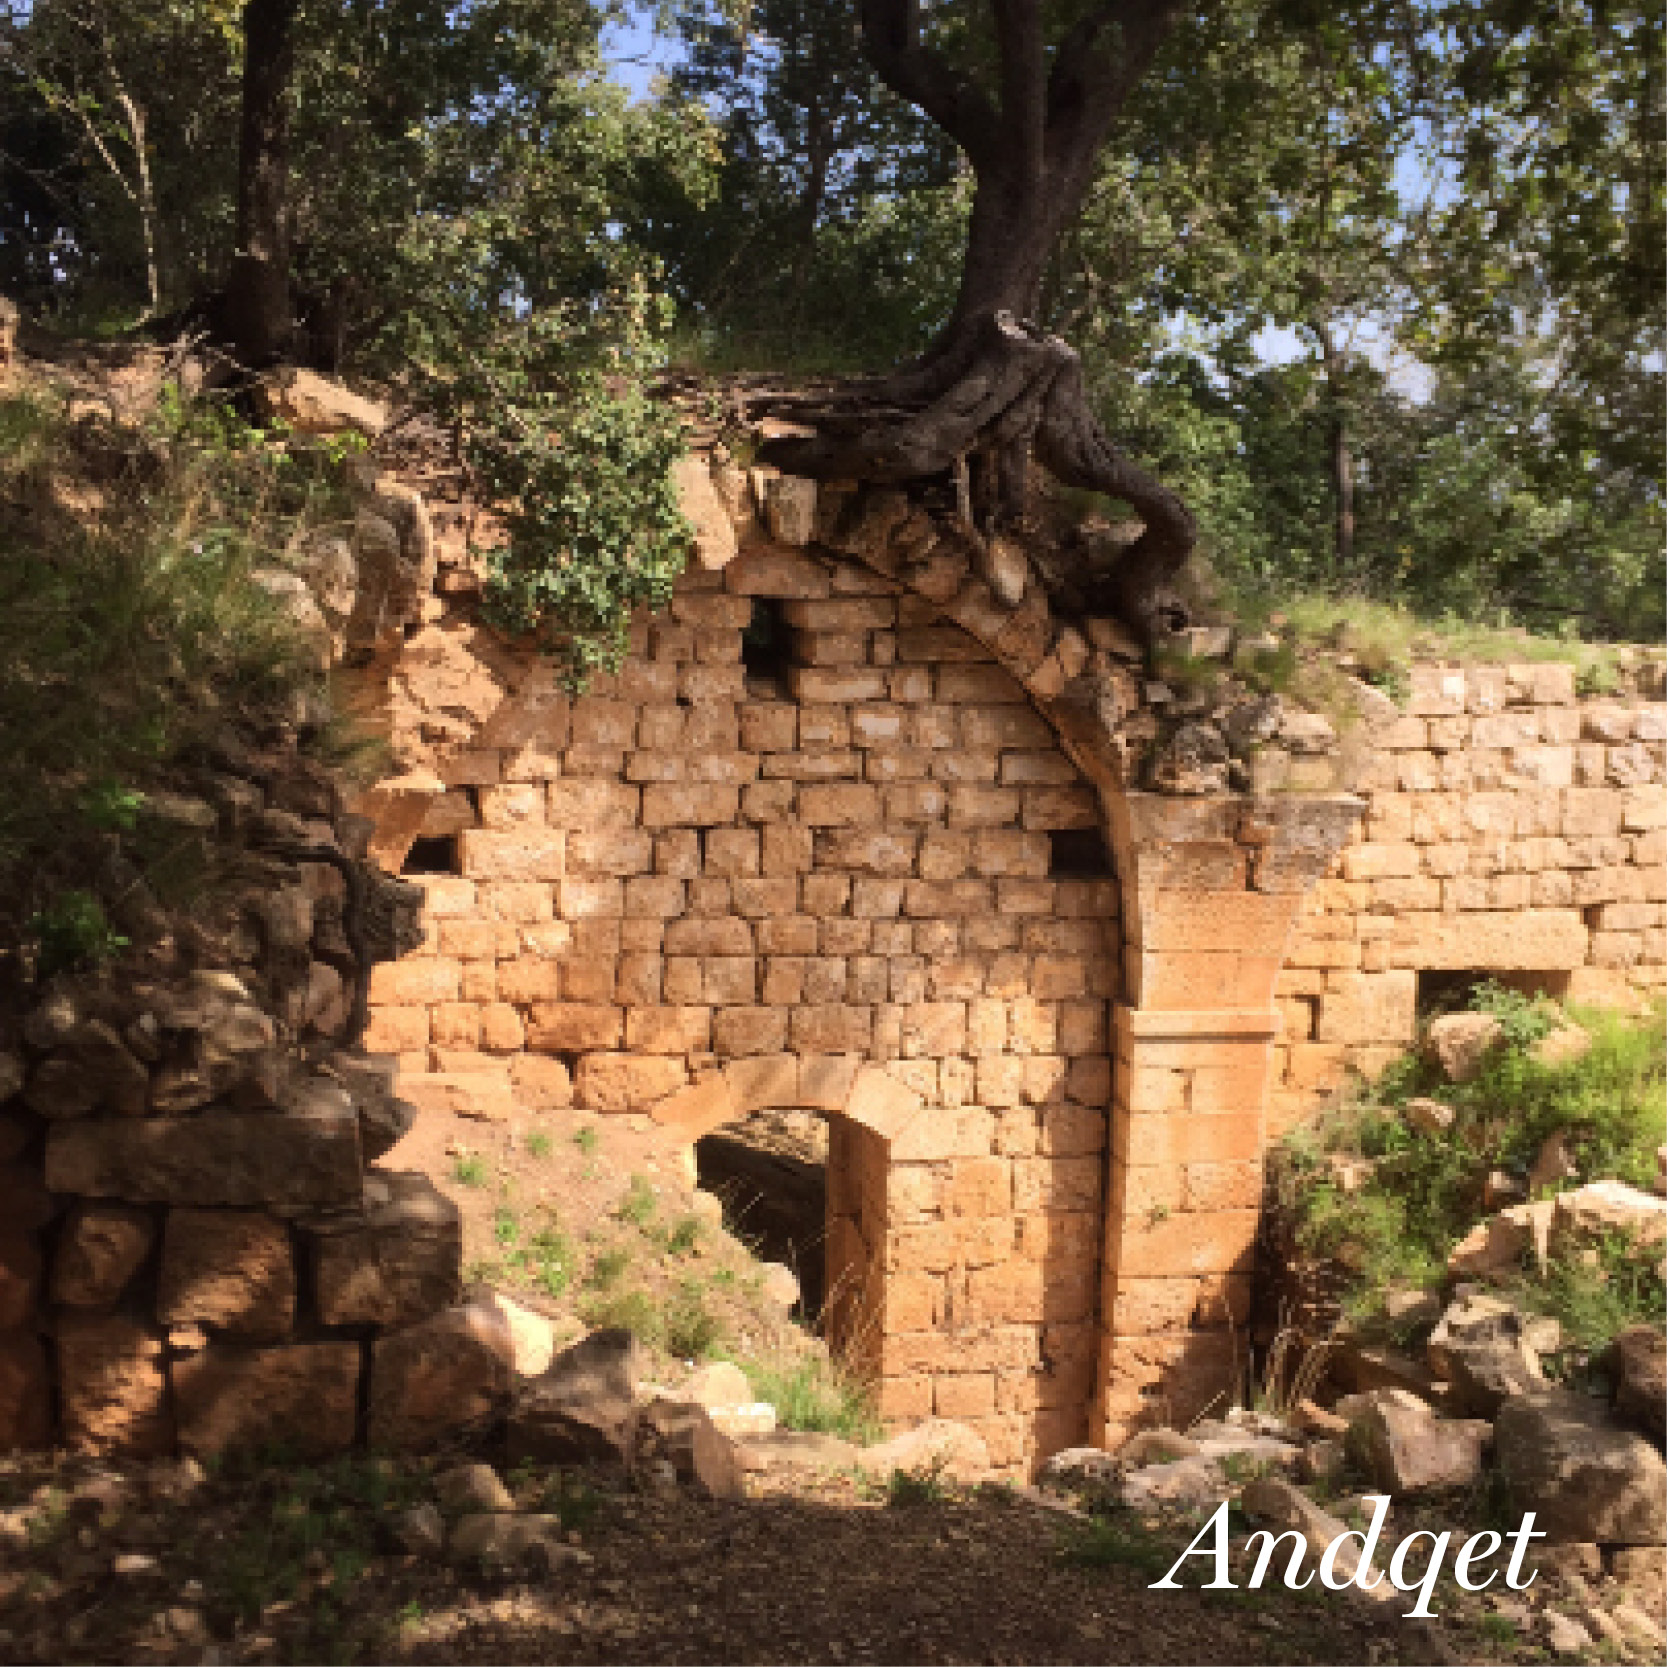 Andqet village